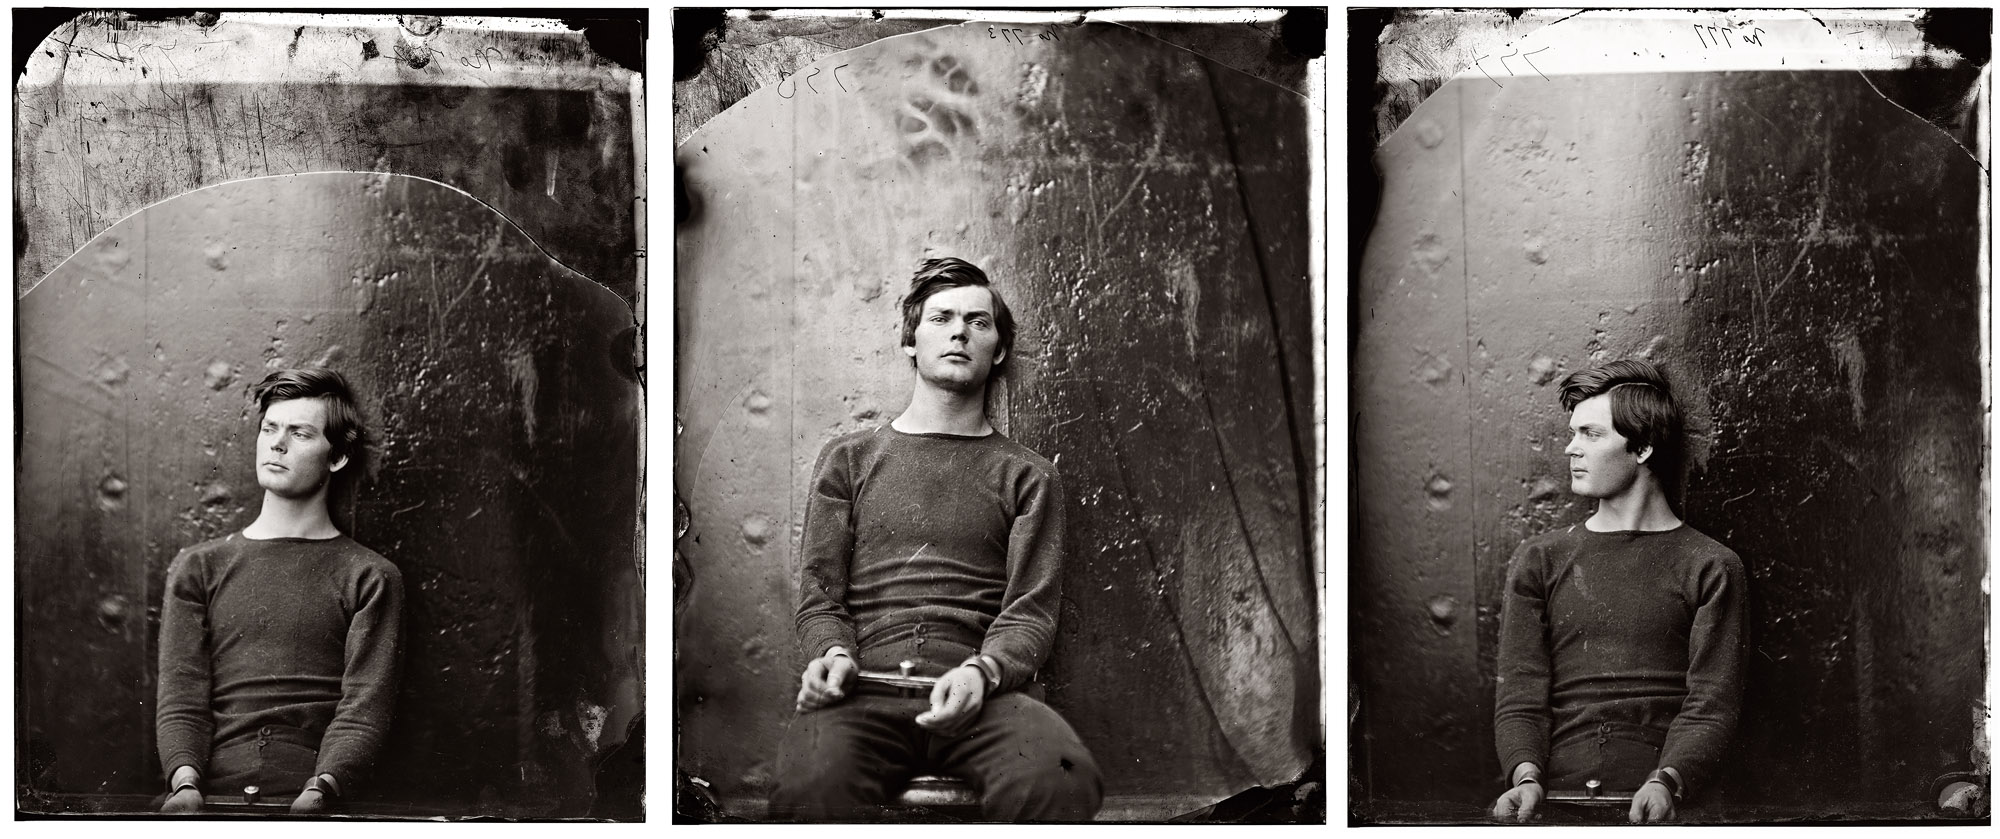 Lewis Powell in rigid metal wrist restraints